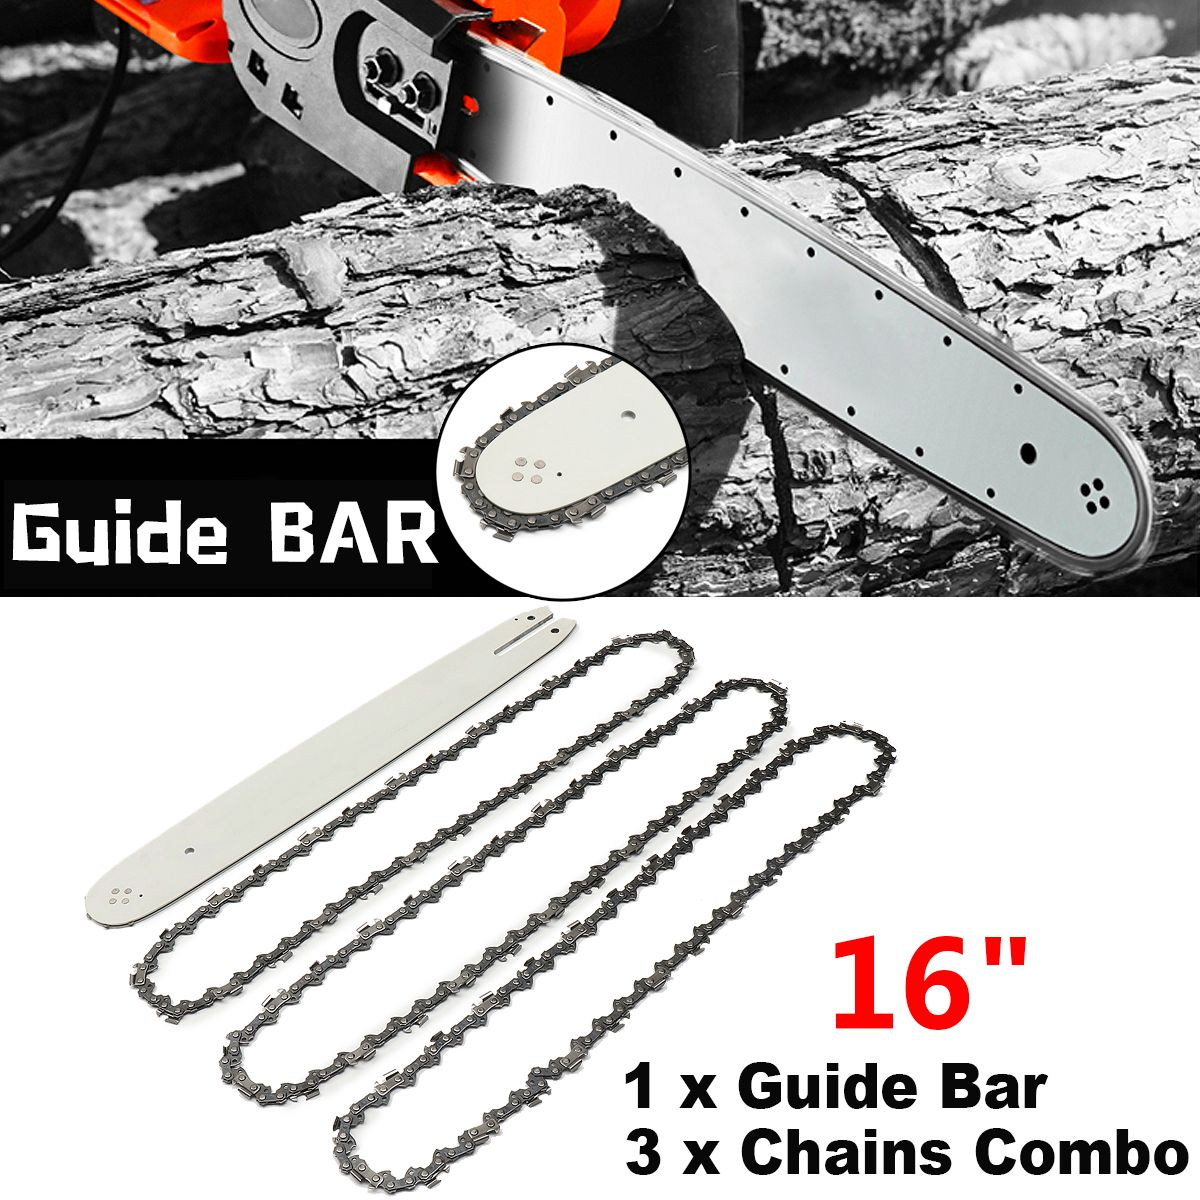 16 Inch Chain Saw Guide Bar with 3pcs Chains for STIHL 009 012 021 E180 MS180 MS190